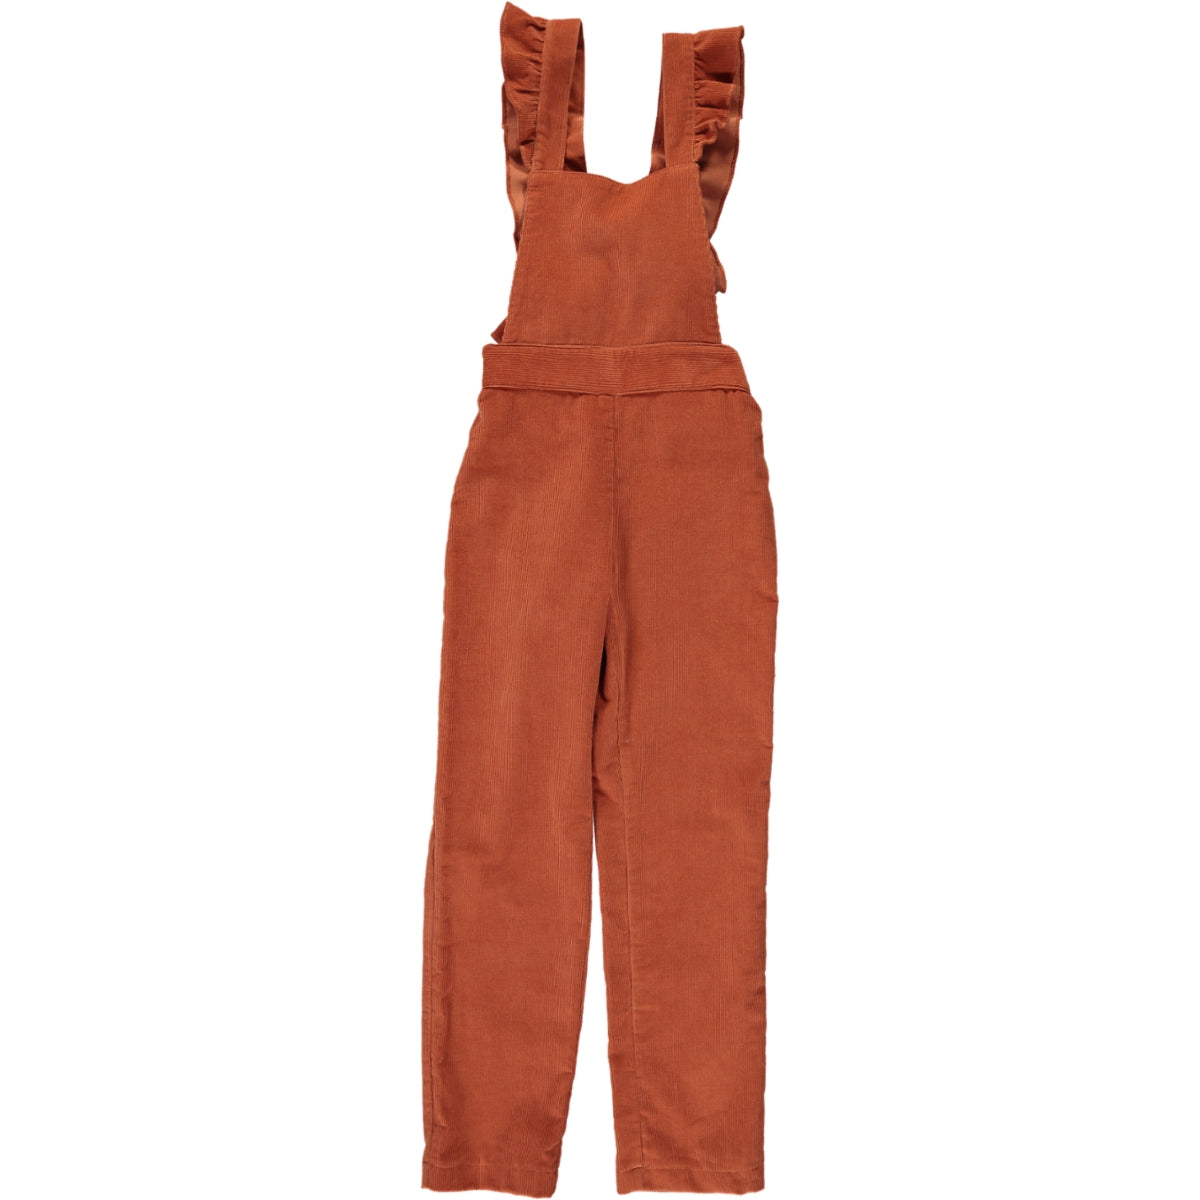 Berenice All-in-One Burnt Orange